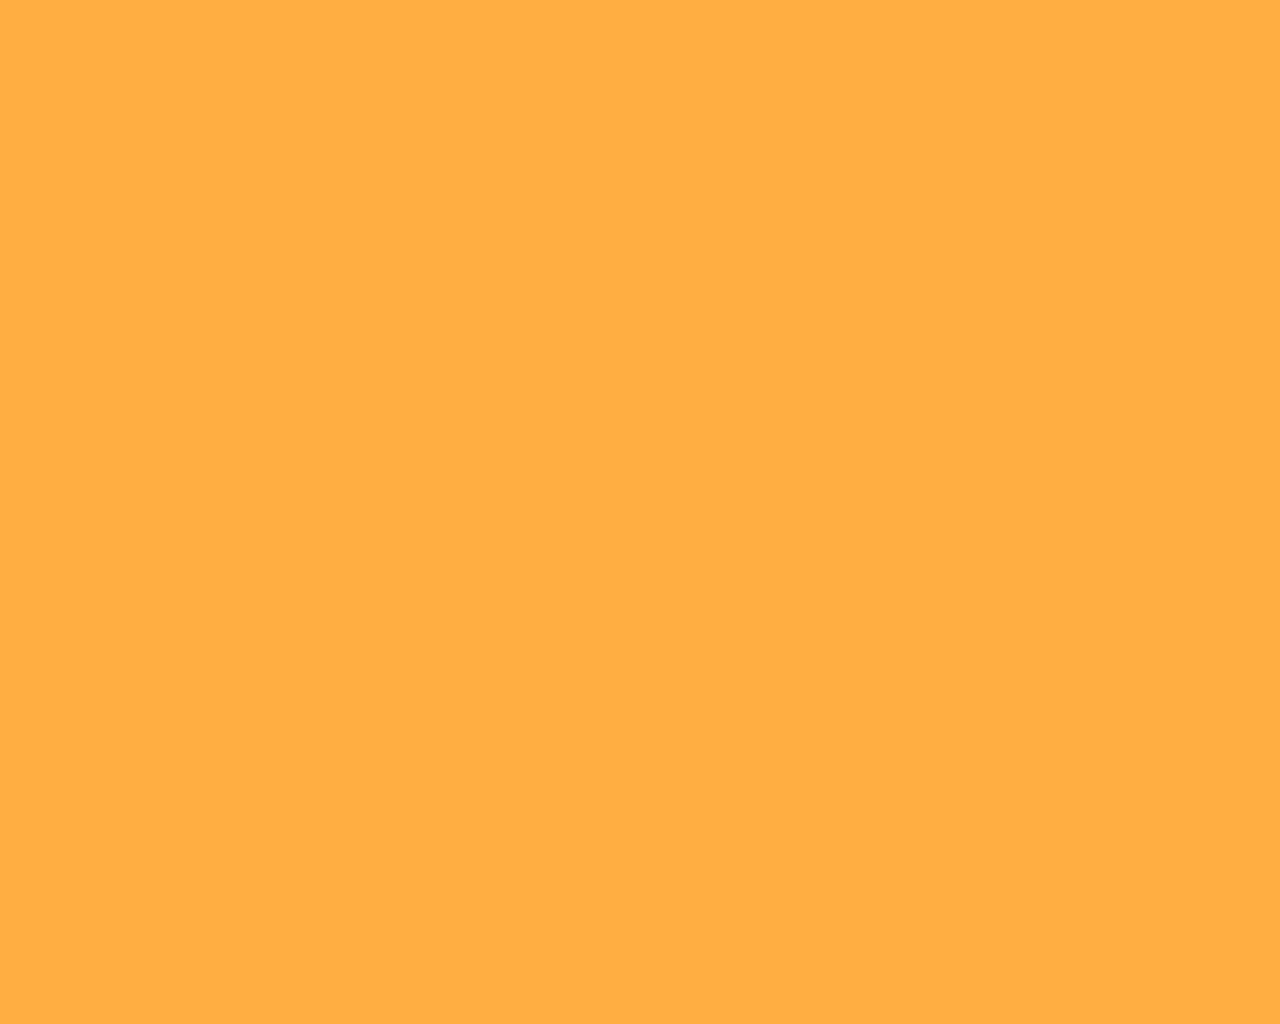 1280x1024 Yellow Orange Solid Color Background